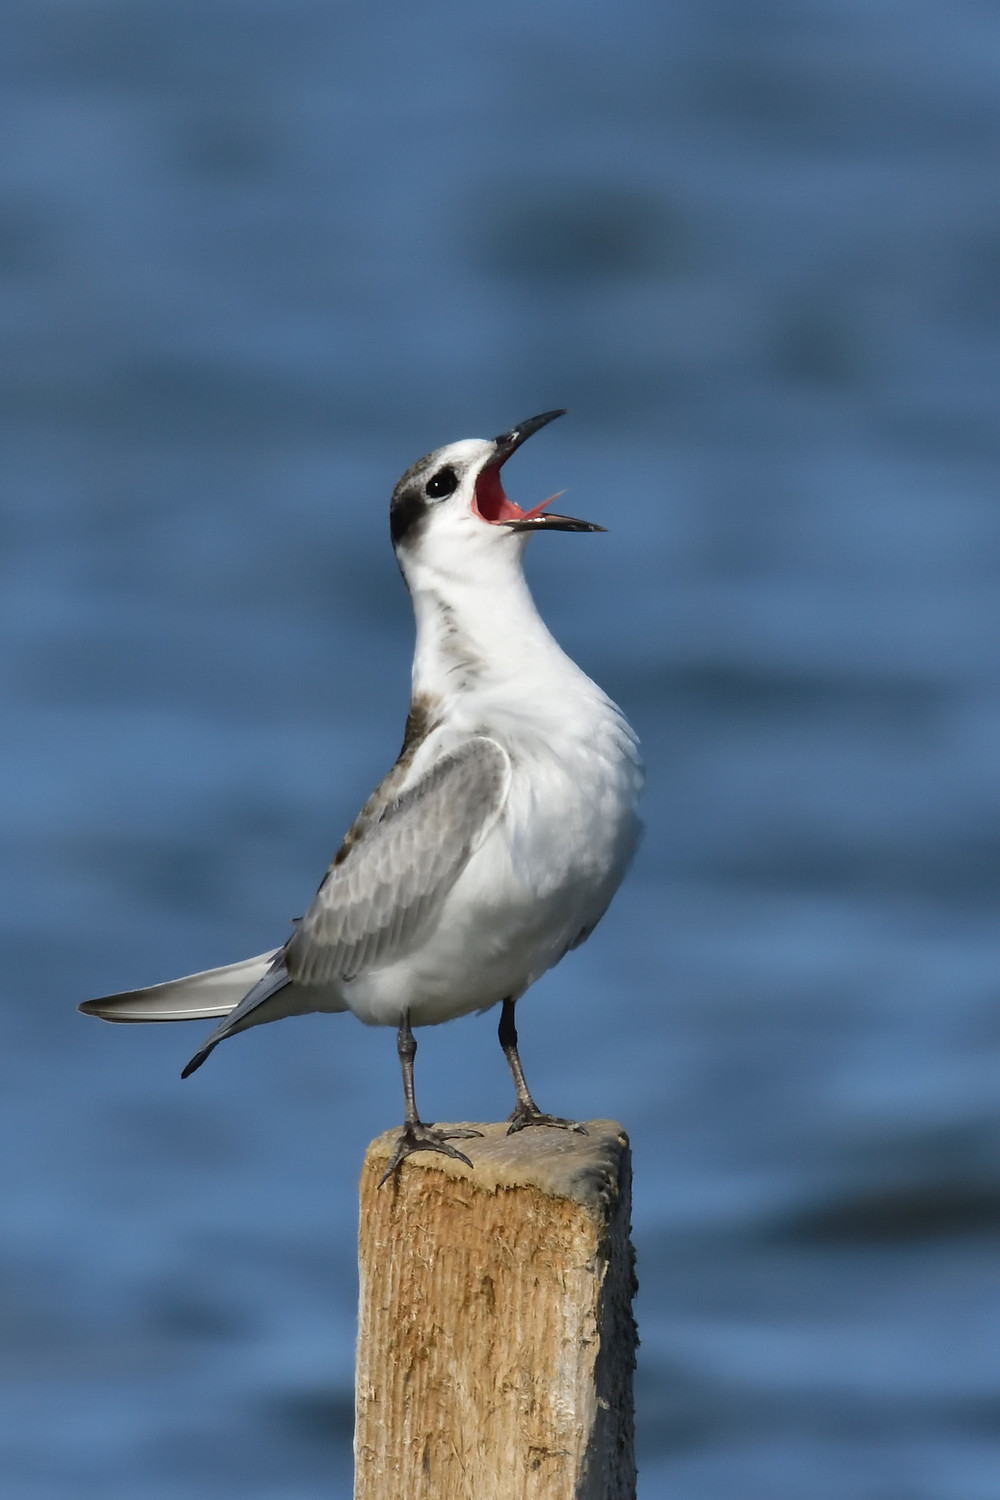 A seagull standing on a pole and cawing - mouth wide open